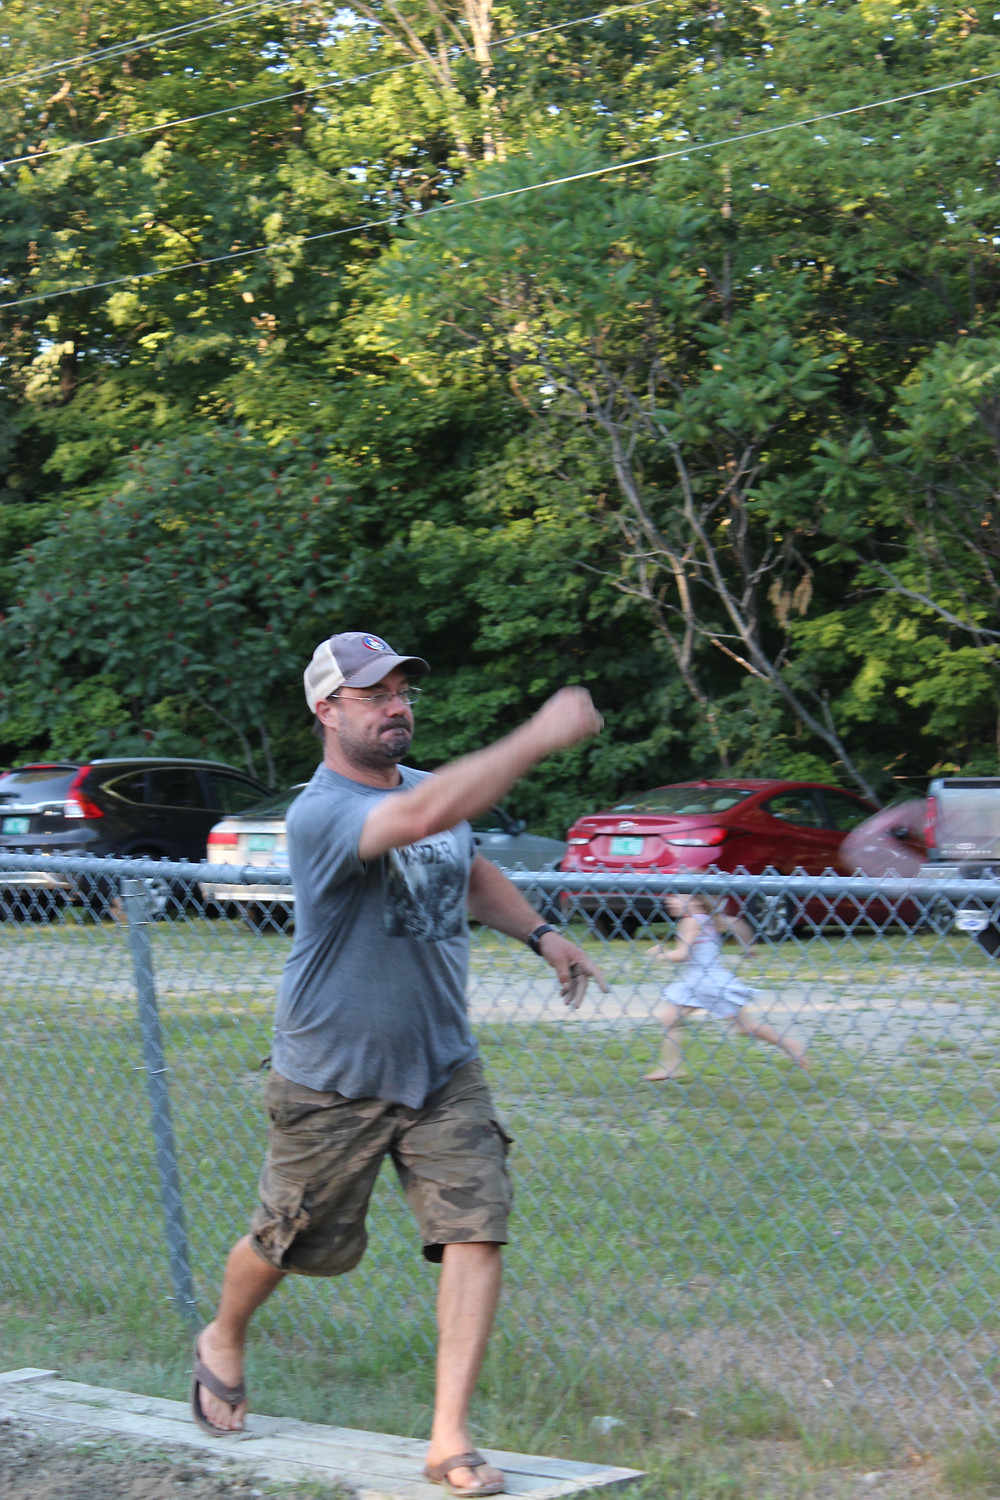 Rob Macri for the Reading team pitches in first round of the Reading-Weathersfield horseshoe tourney.